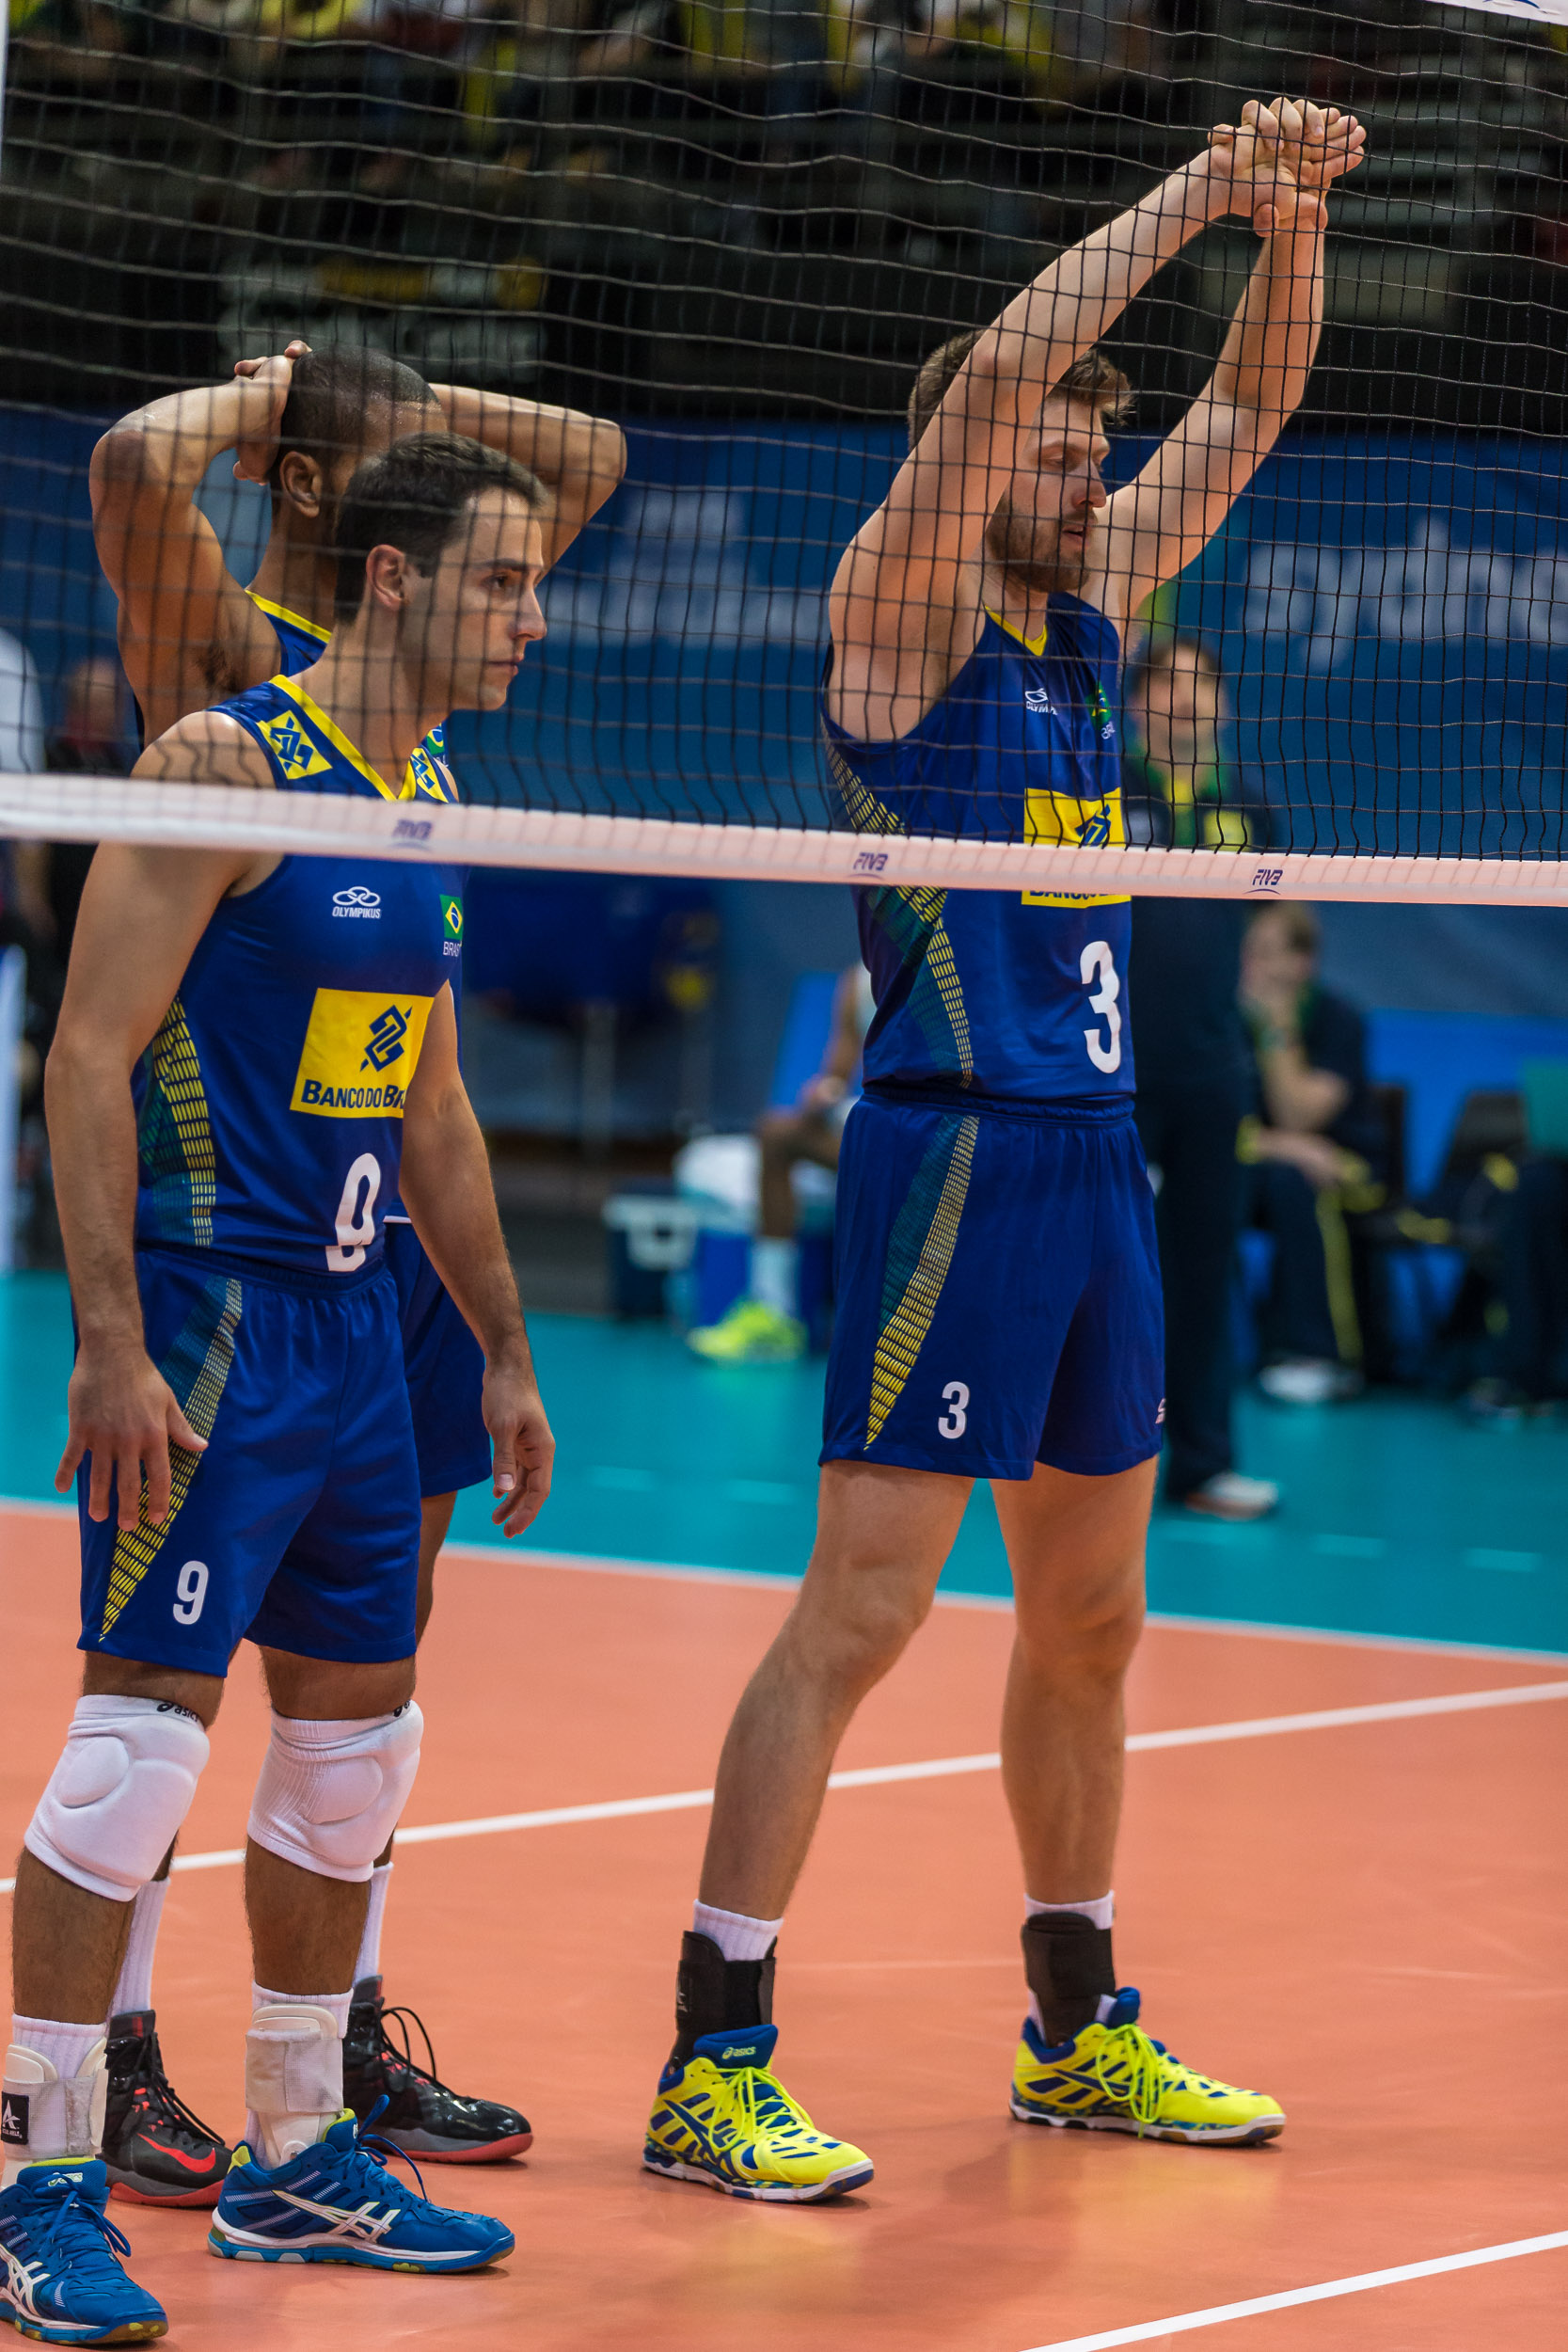 http://www.fivb.org/Vis2009/Images/GetImage.asmx?No=201486535&maxSize=960